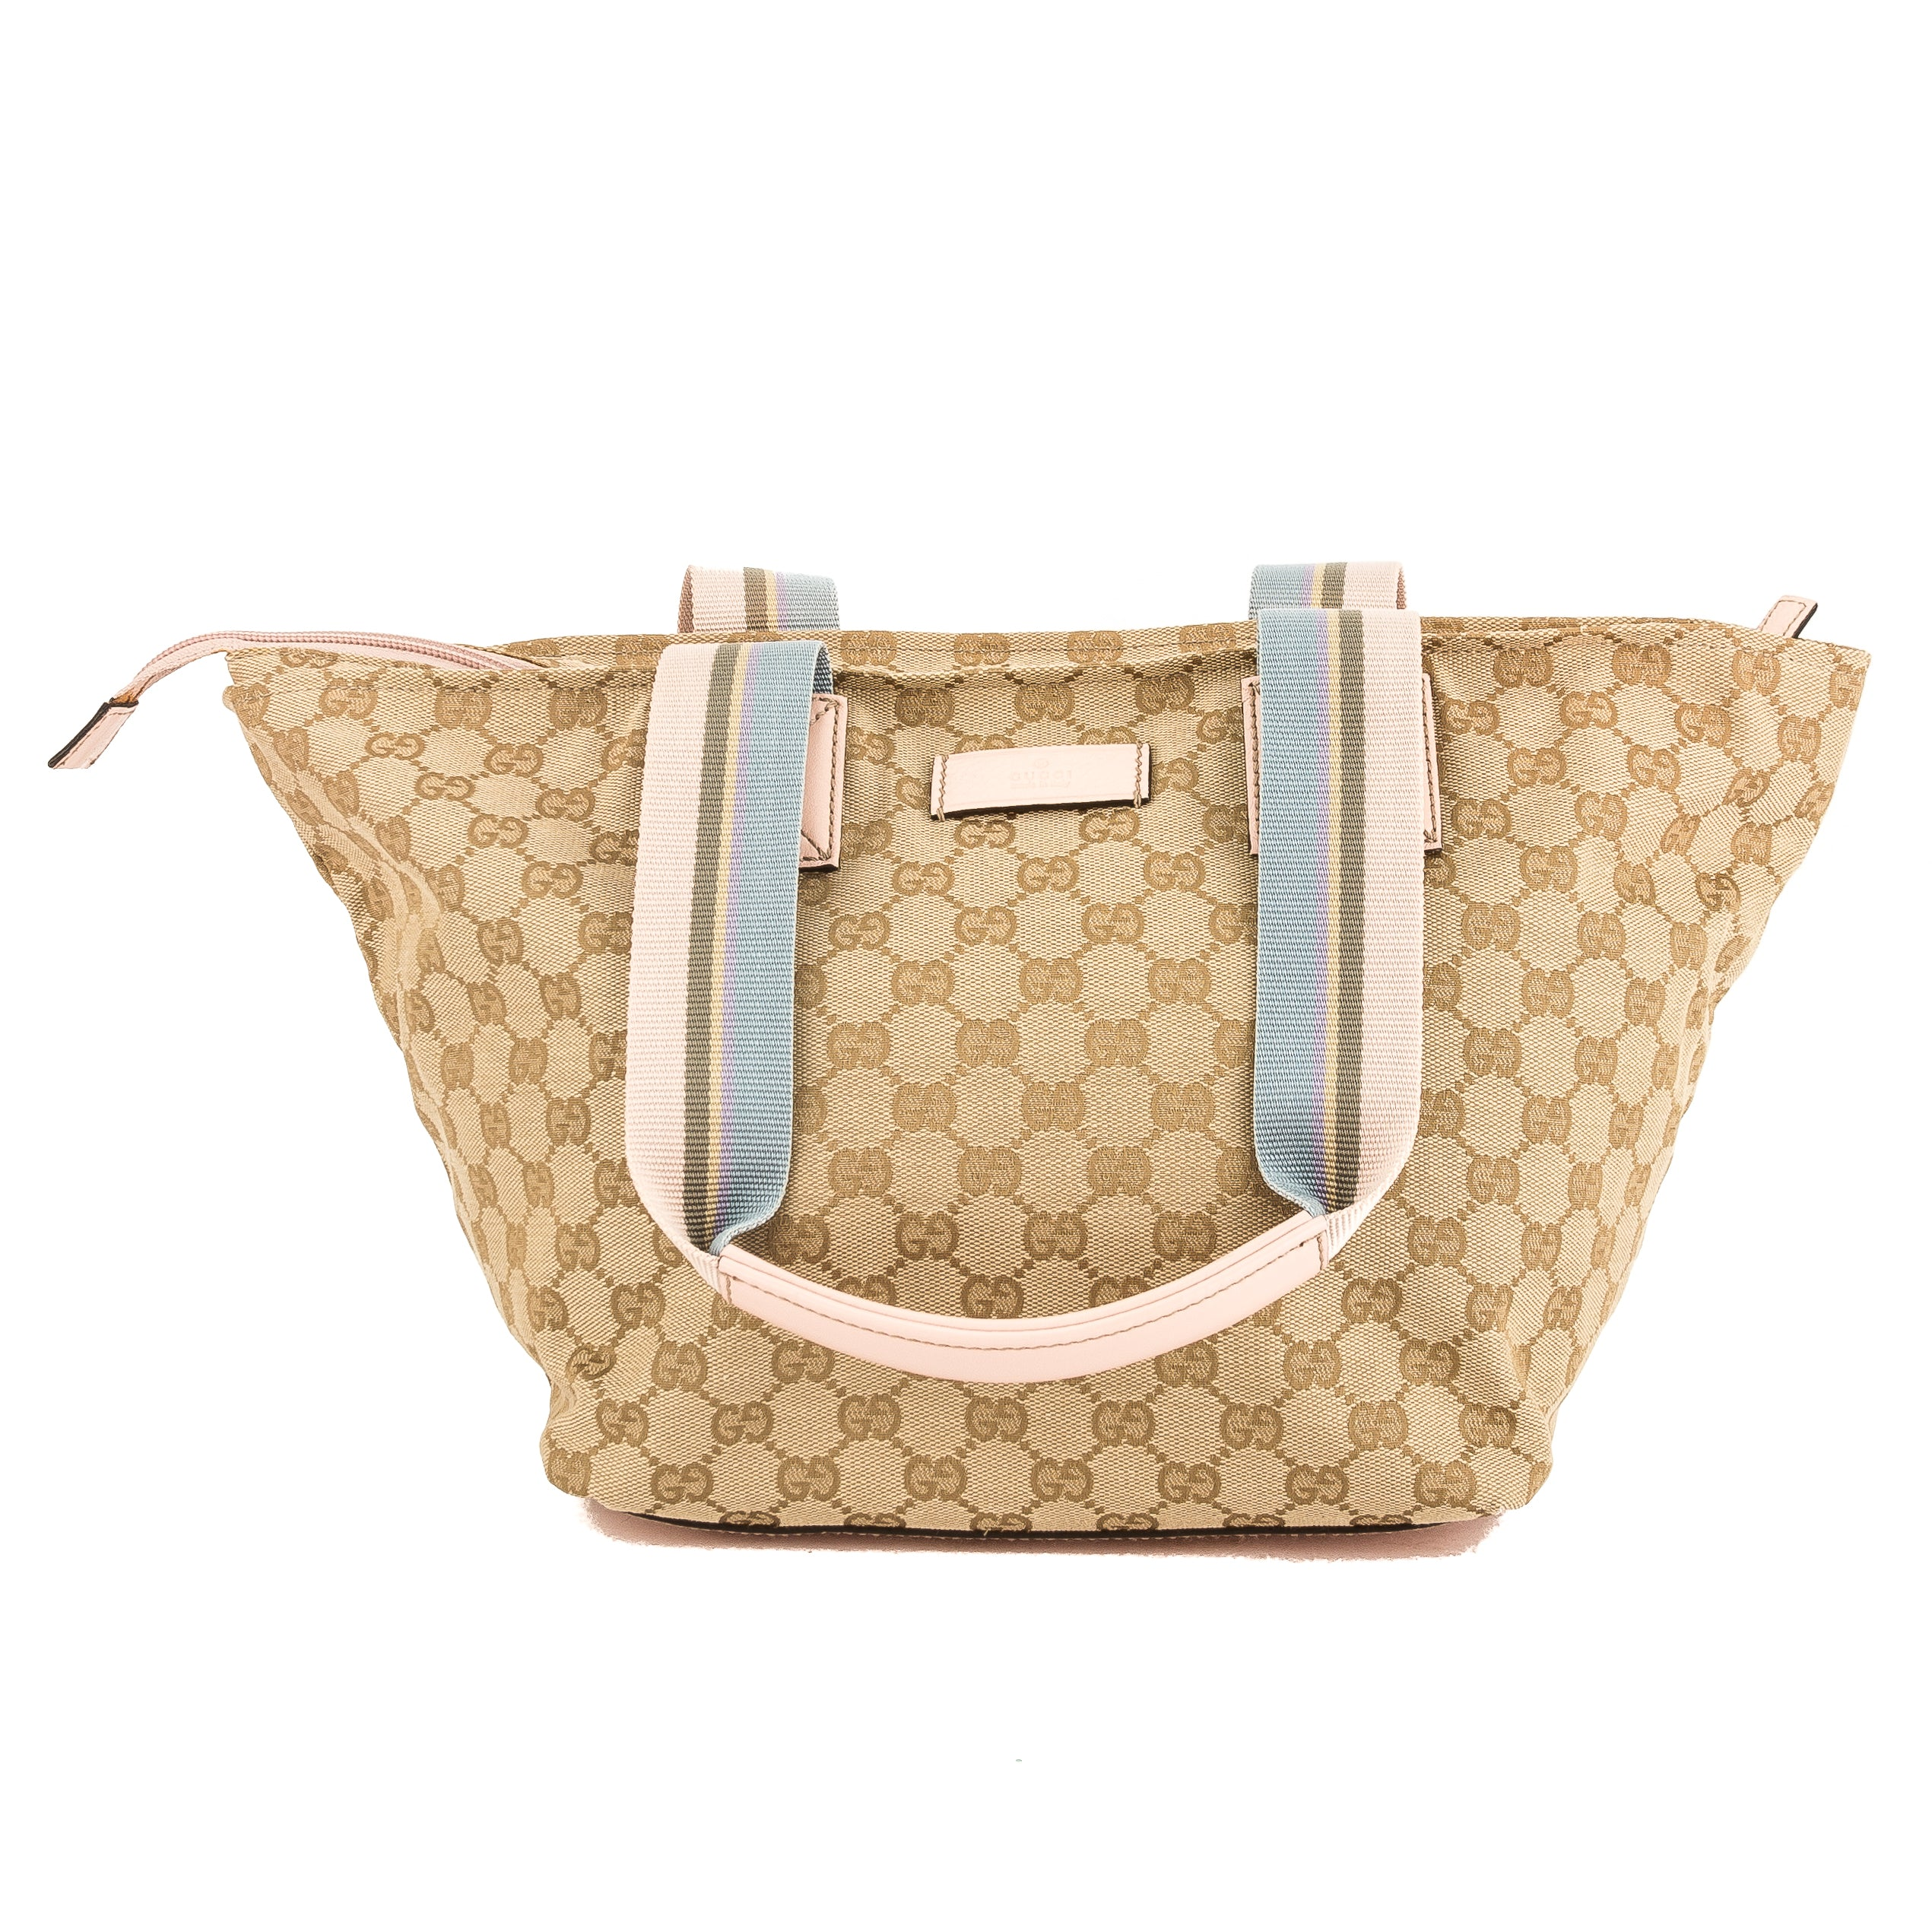 6af52cbb6672 Gucci Pink Leather GG Monogram Canvas Web Tote Bag (Pre Owned ...